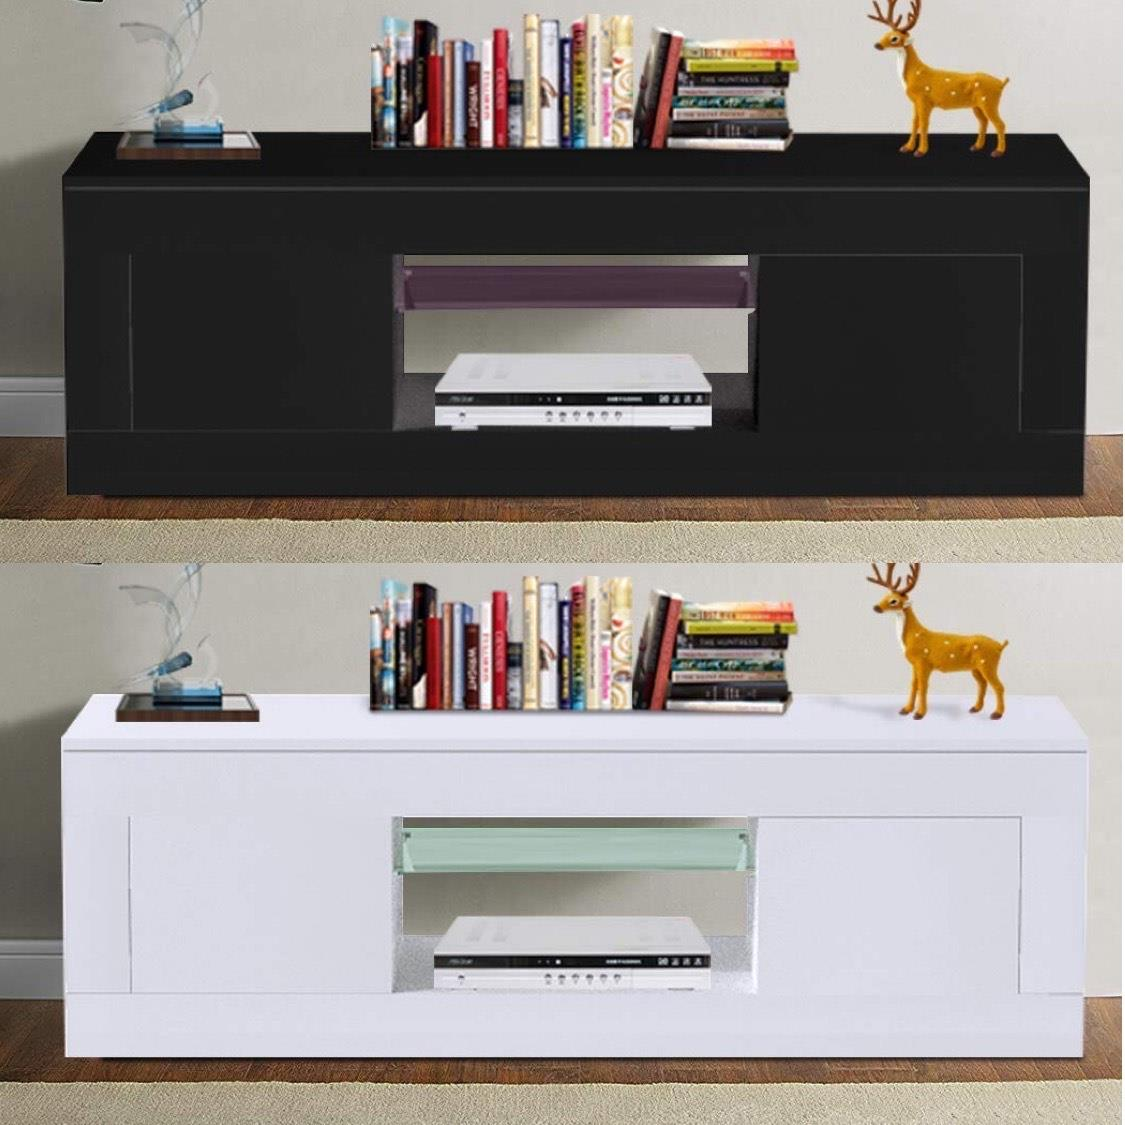 Details about NEW TV Stand Cabinet Unit Modern TV Living Room Home  Furniture High Gloss